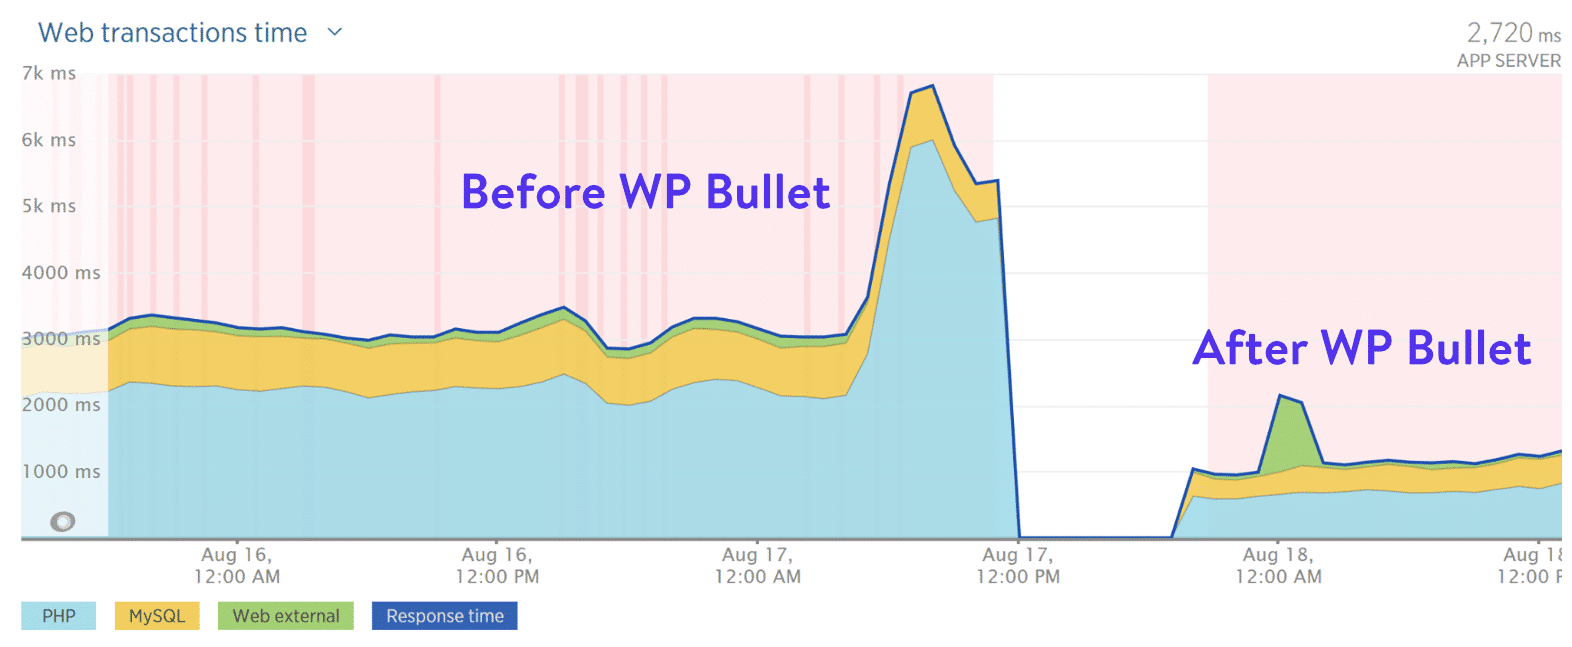 Before and After WP Bullet